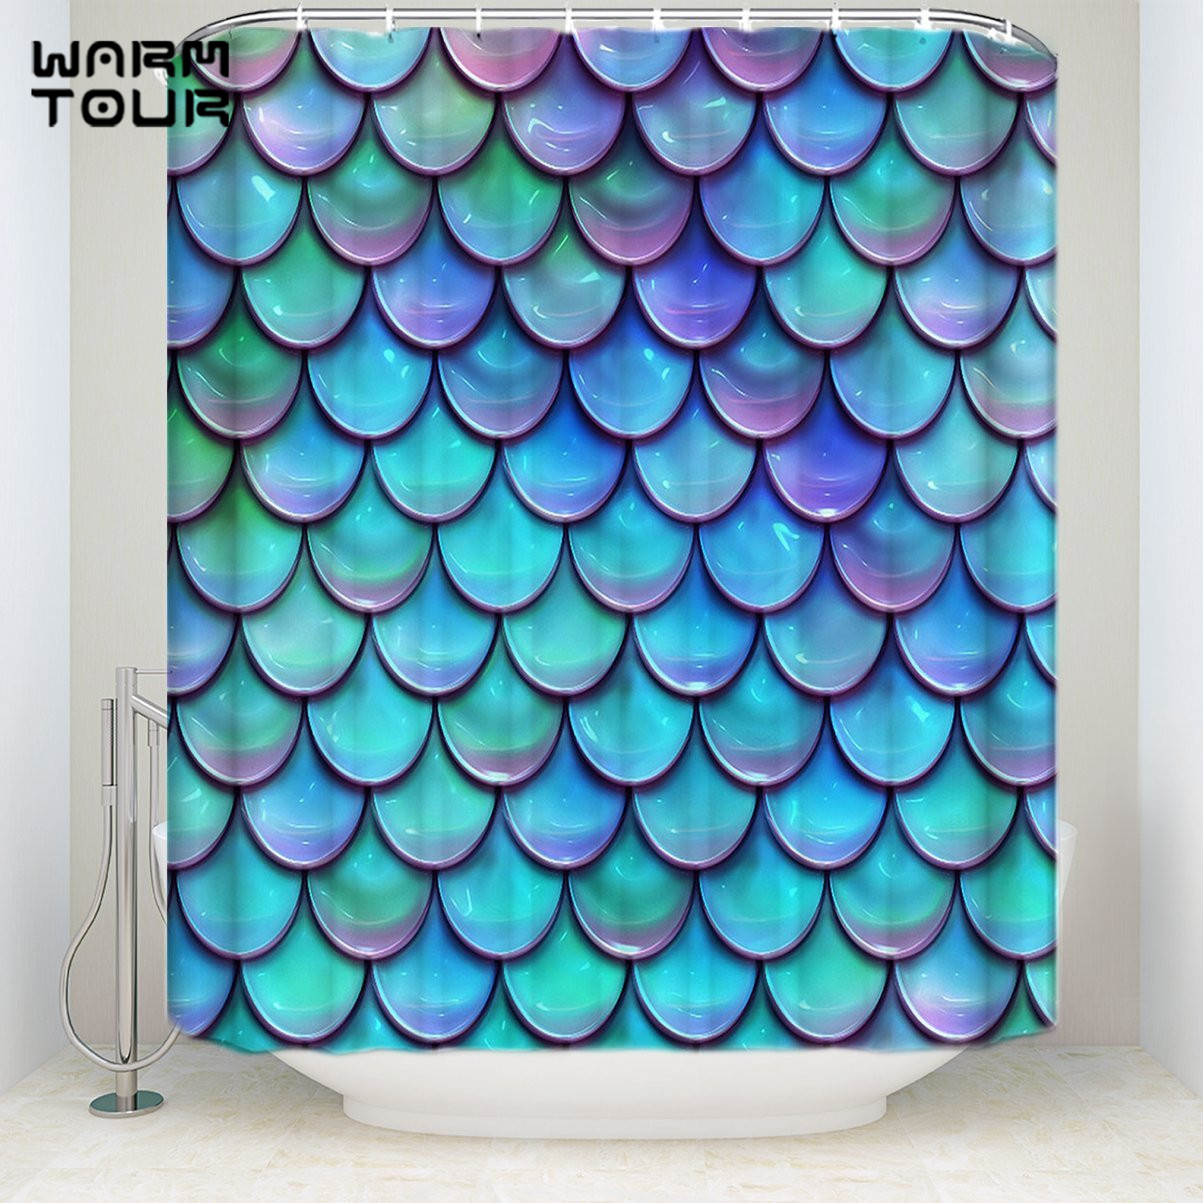 Extra Long Fabric Bath Shower Curtains 48 x 72 Fantasy Gradient Fish Scale Mildew-resistant Bathroom Decor Sets with Hooks